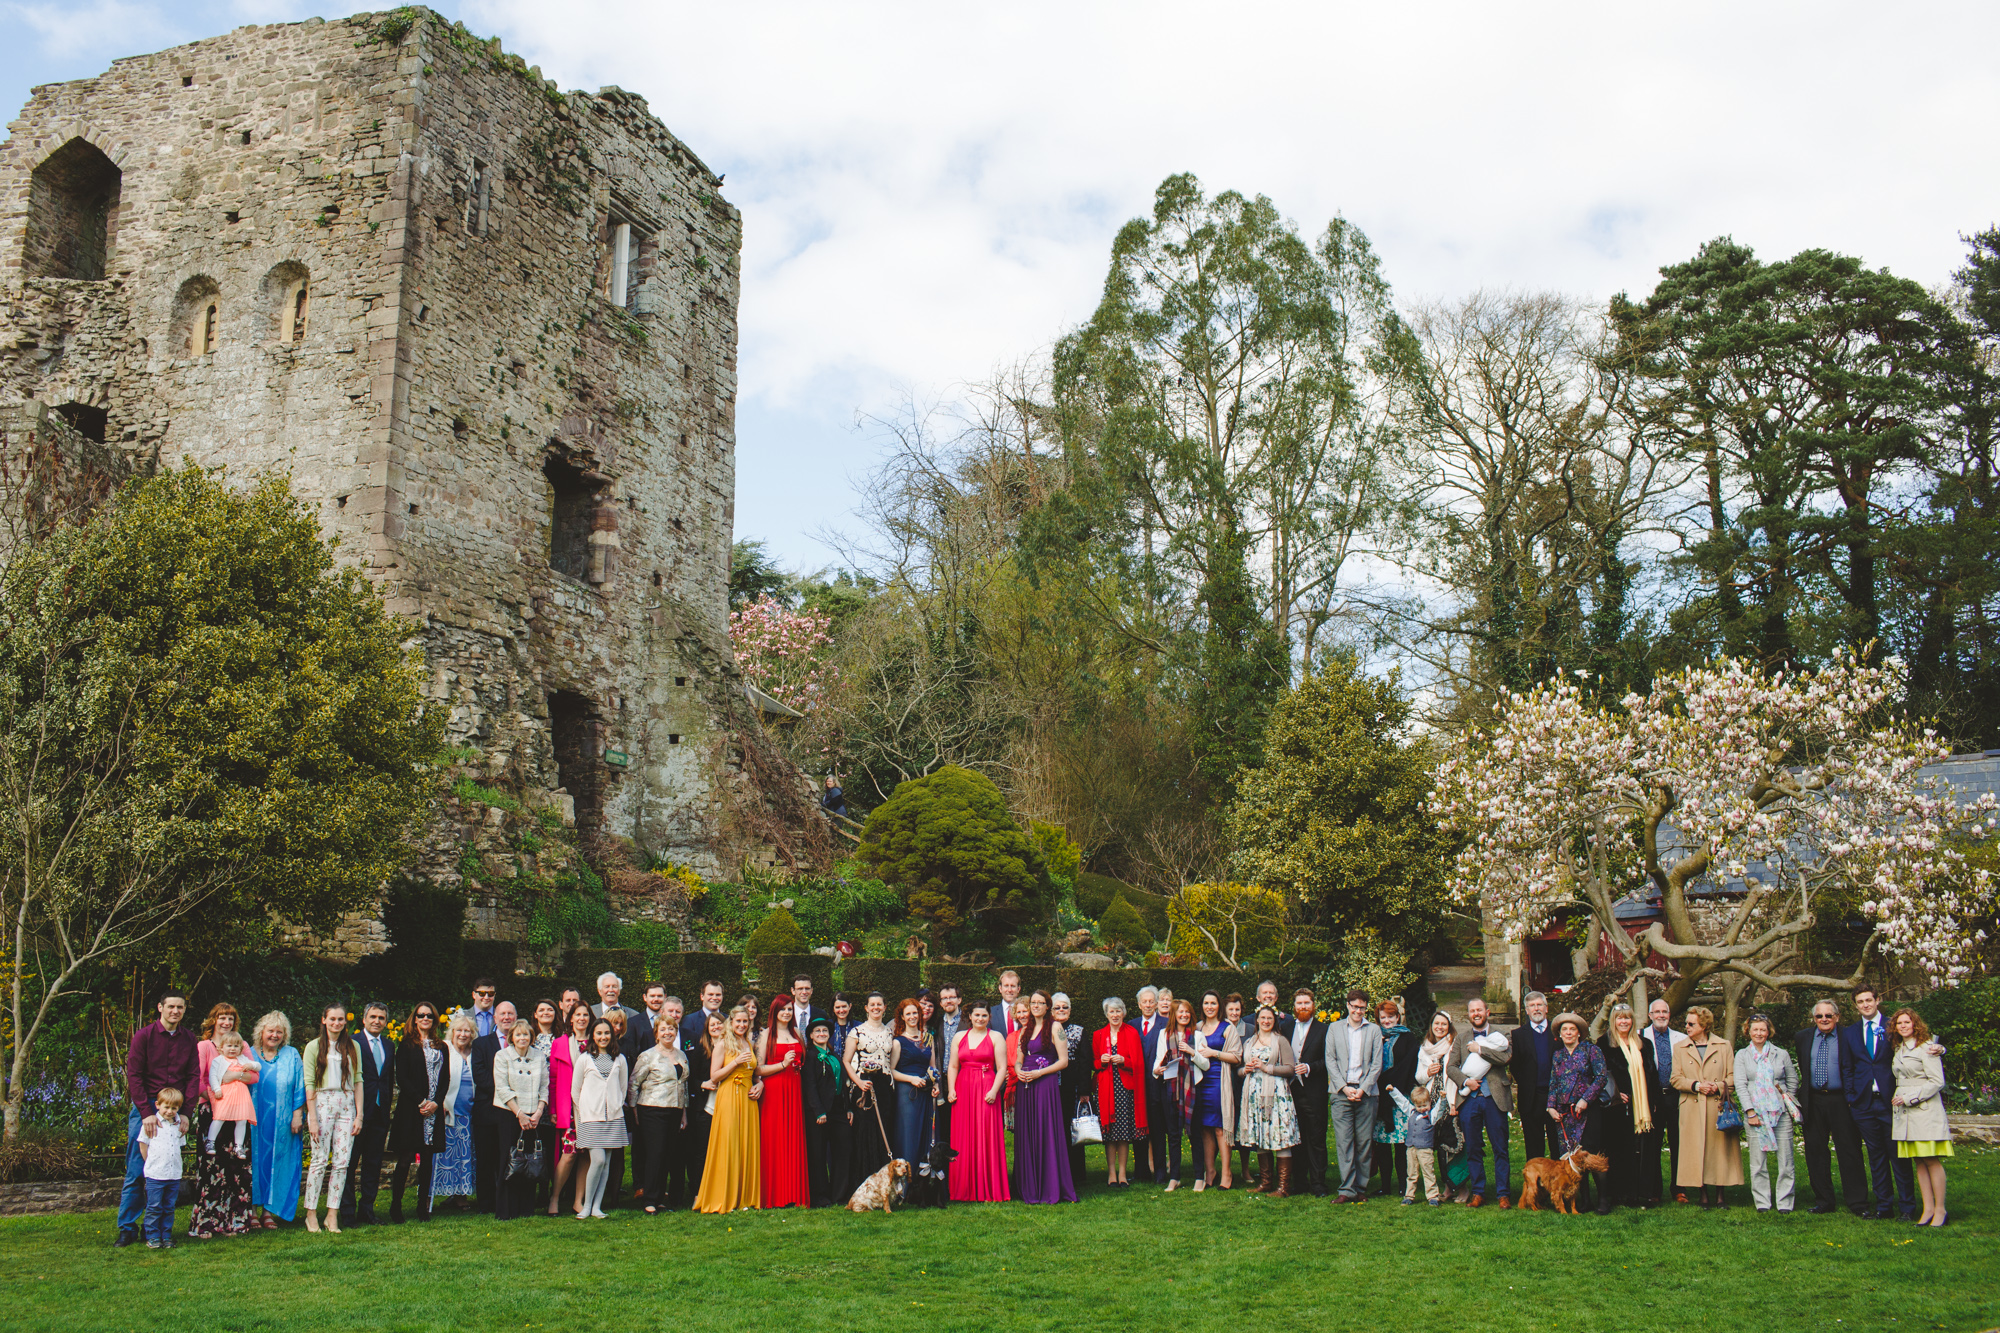 usk-castle-alternative-wedding-photographer-uk-camera-hannah-11.jpg